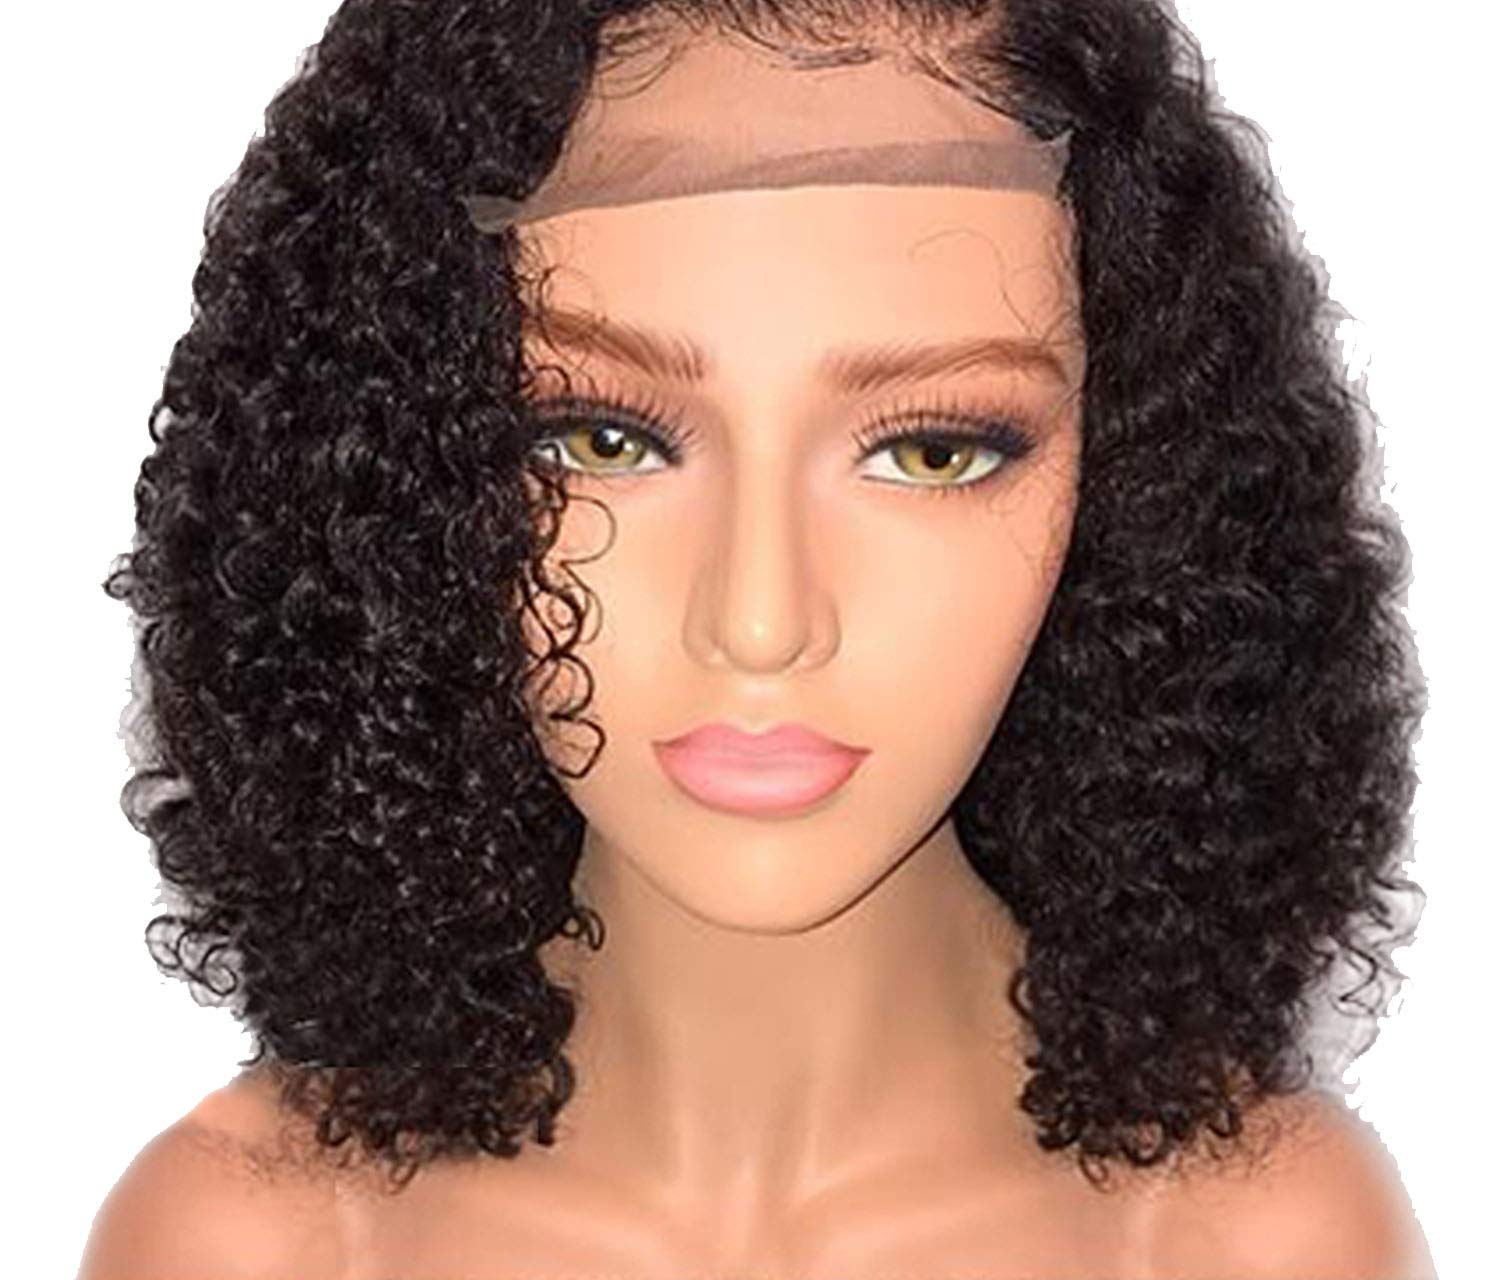 Lace Front Human Hair Wigs Pre Plucked With Baby Hair Curly Hair Lace Front Wigs Tshirt,Natural Color Tshirt,14inches Tshirt,150%